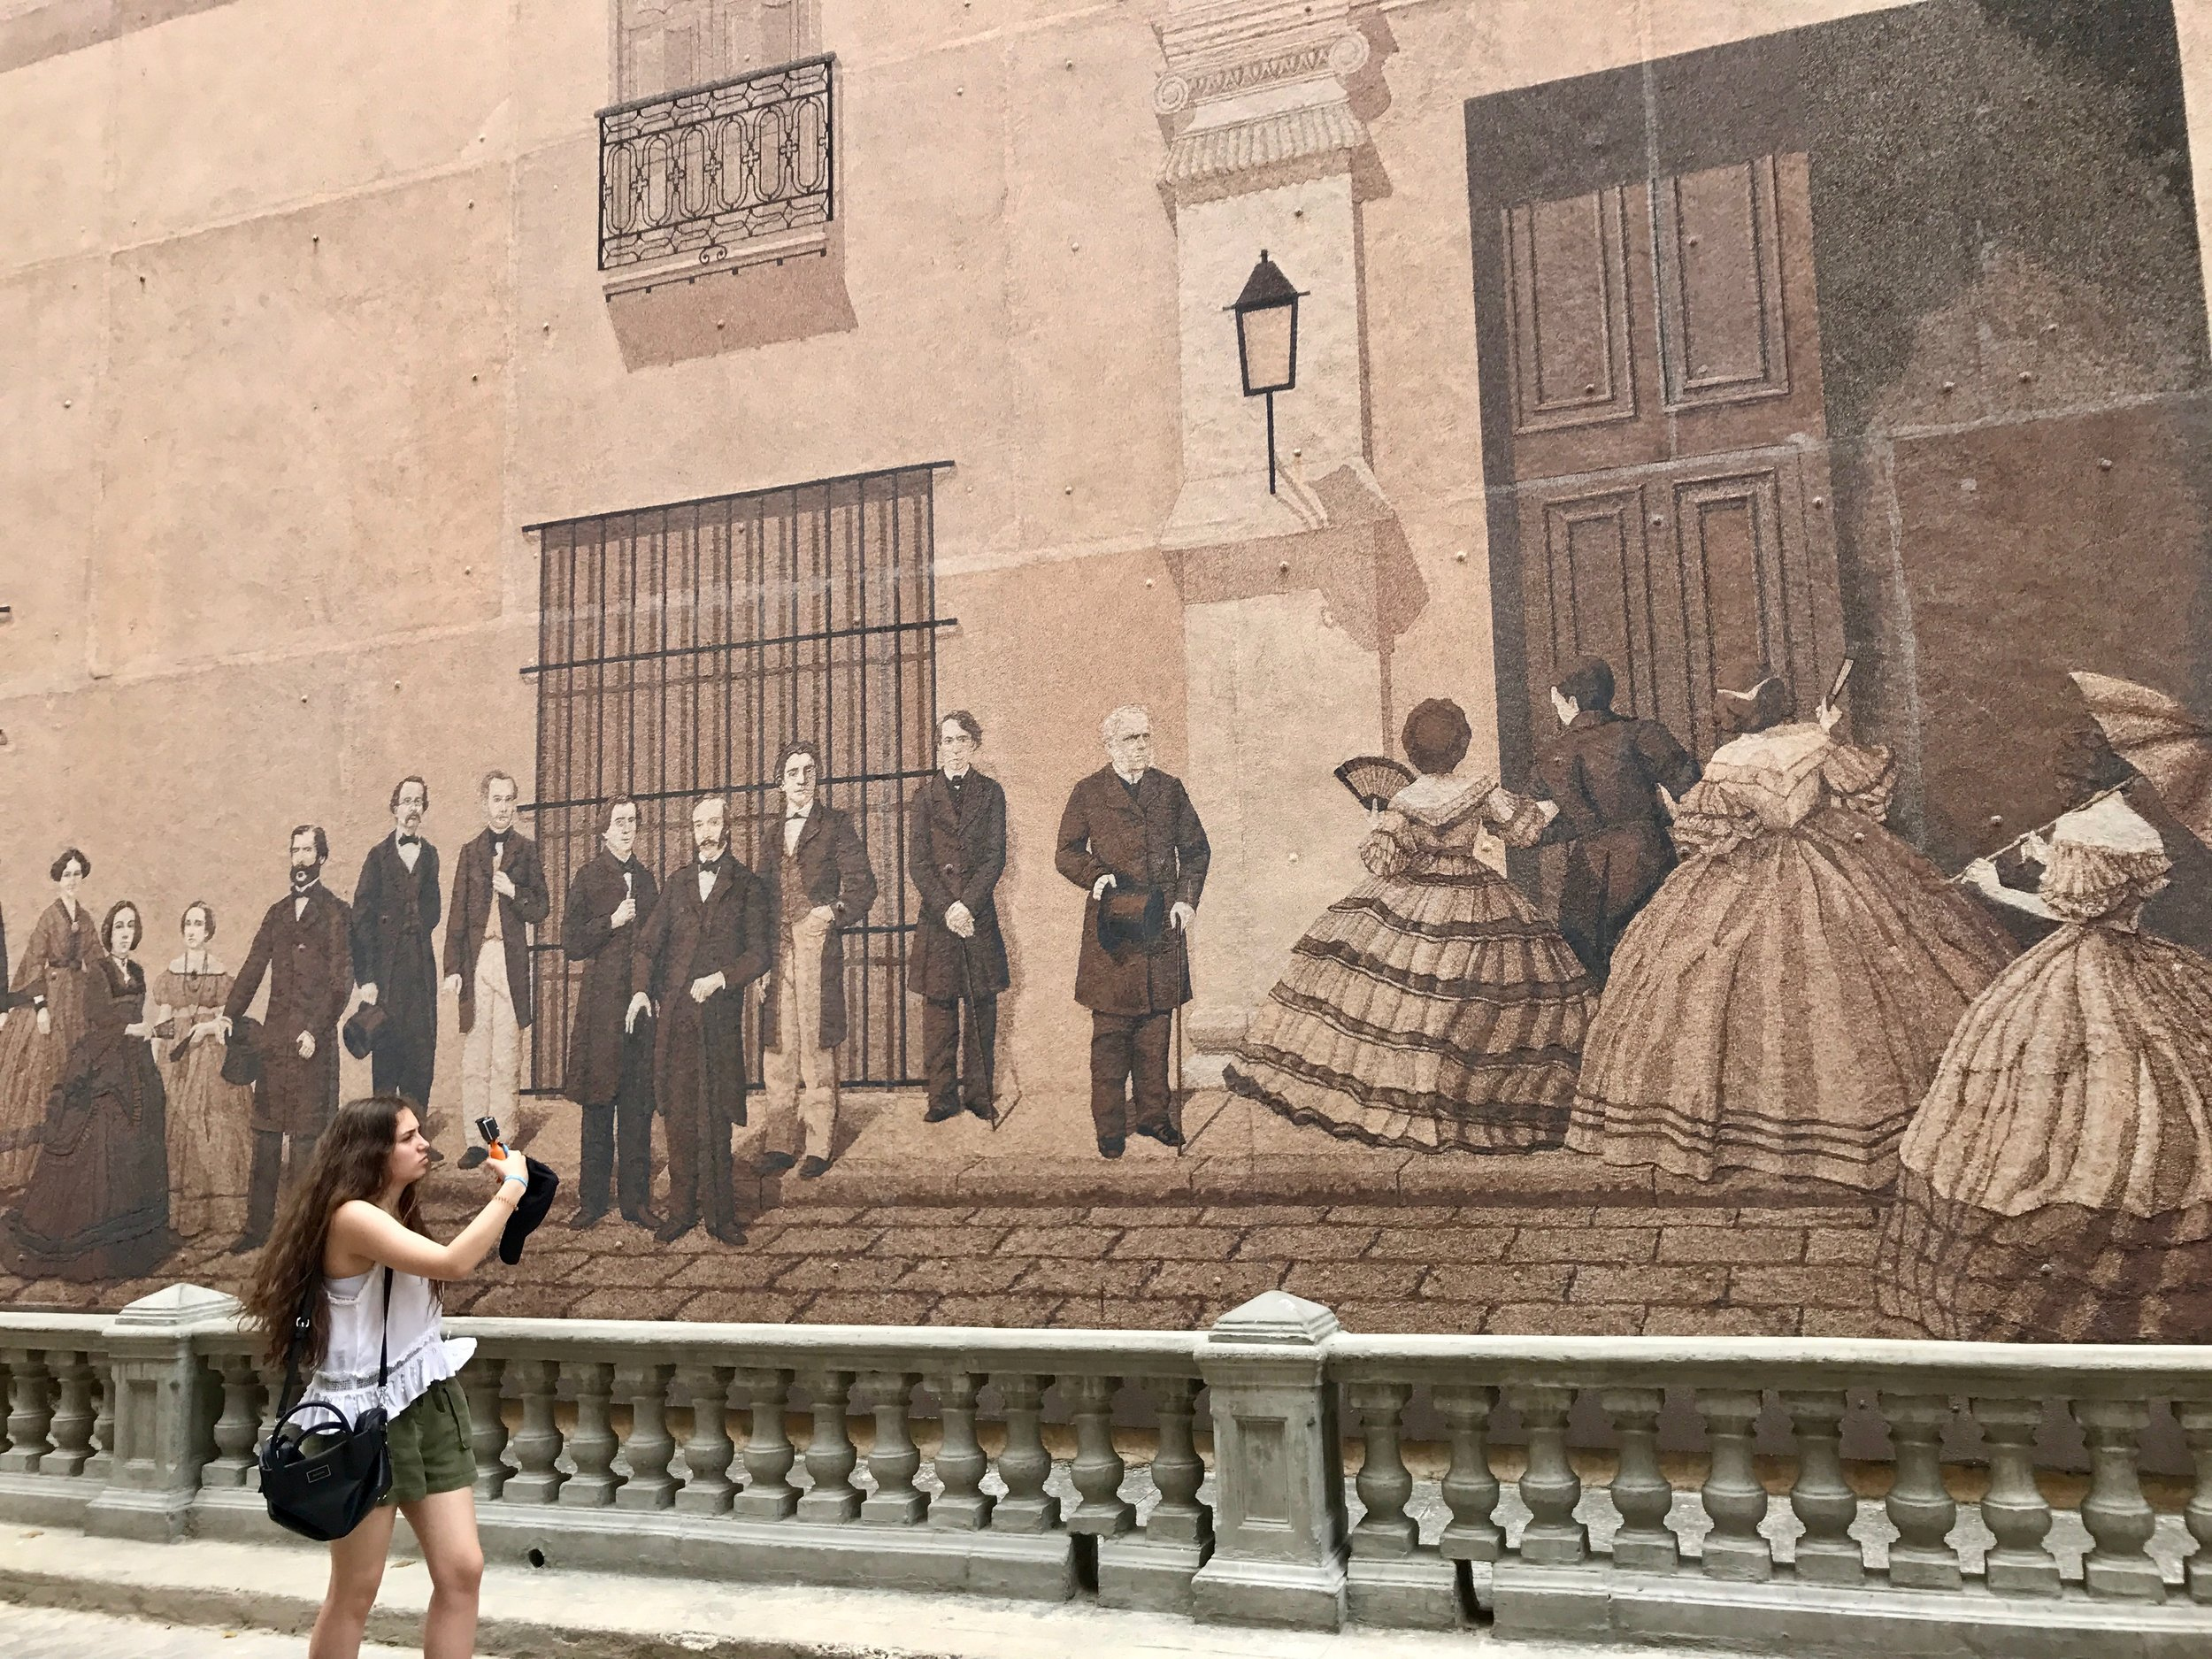 Mural by Andrés Carillo depicting important figures in Havana's history. It was made with sand and resin.